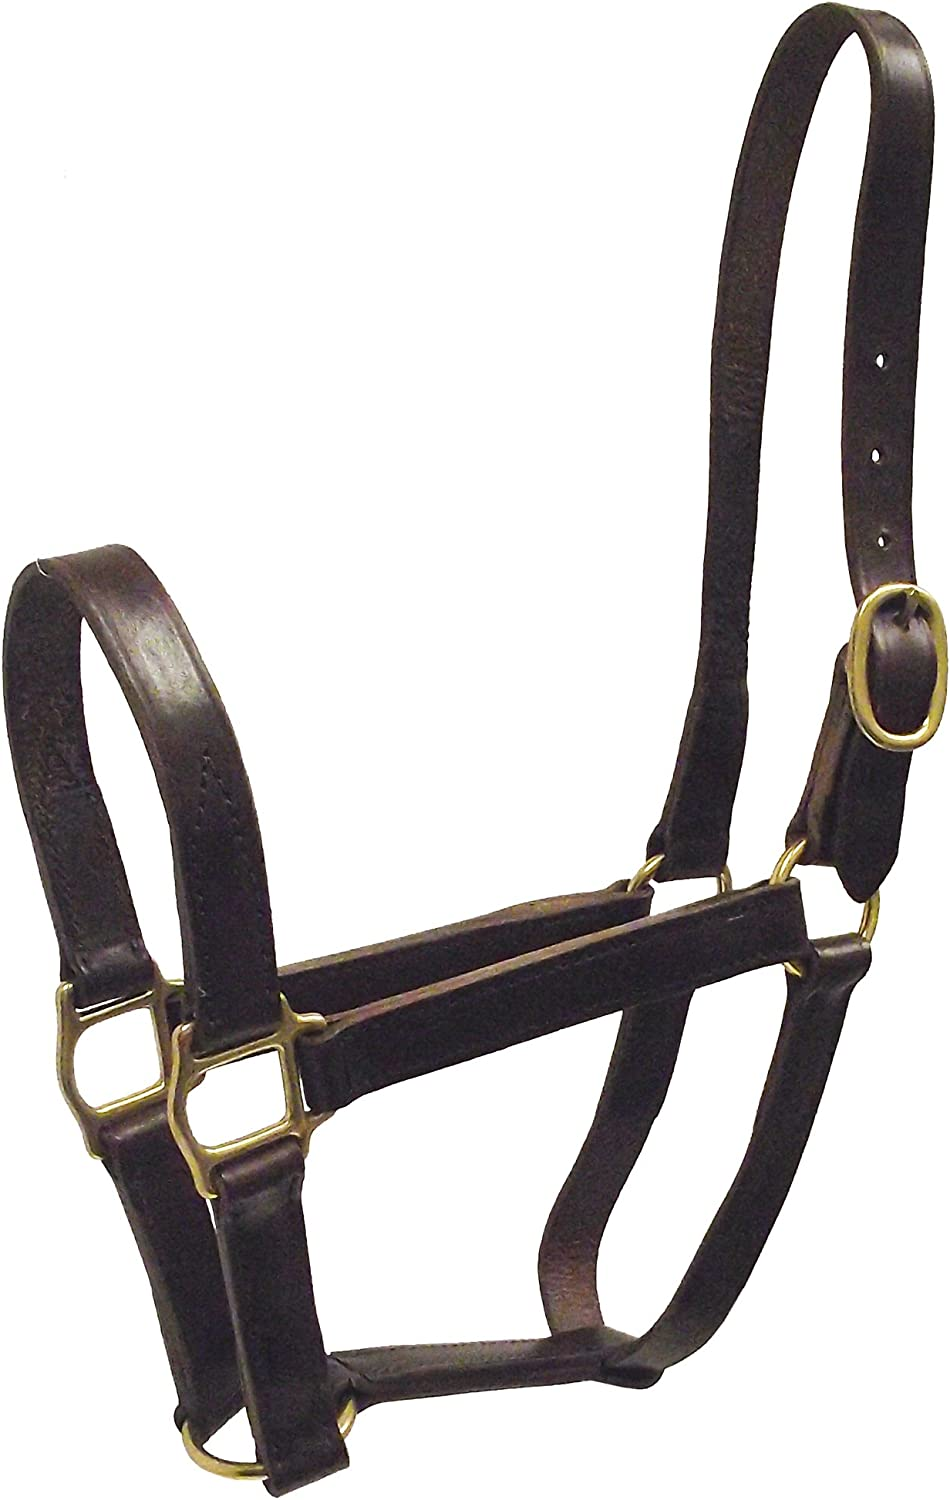 Hamilton 3 4Inch Leather Quality Halter, Weanling Size, Fits 200 to 300Pound, Havana Brown